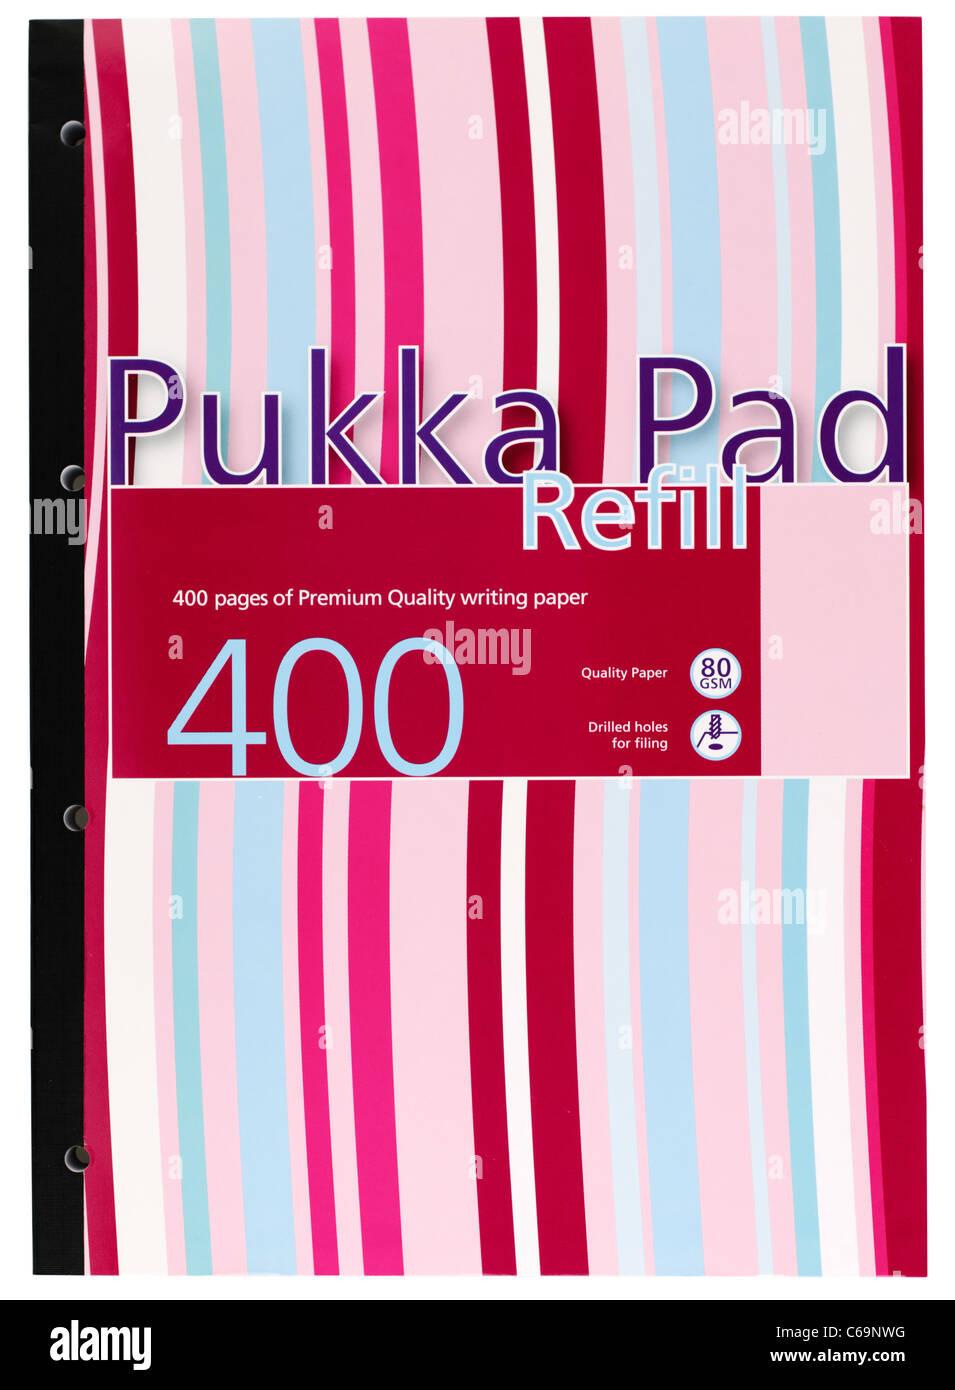 Pukka A4 refill pad of 400 pages - Stock Image